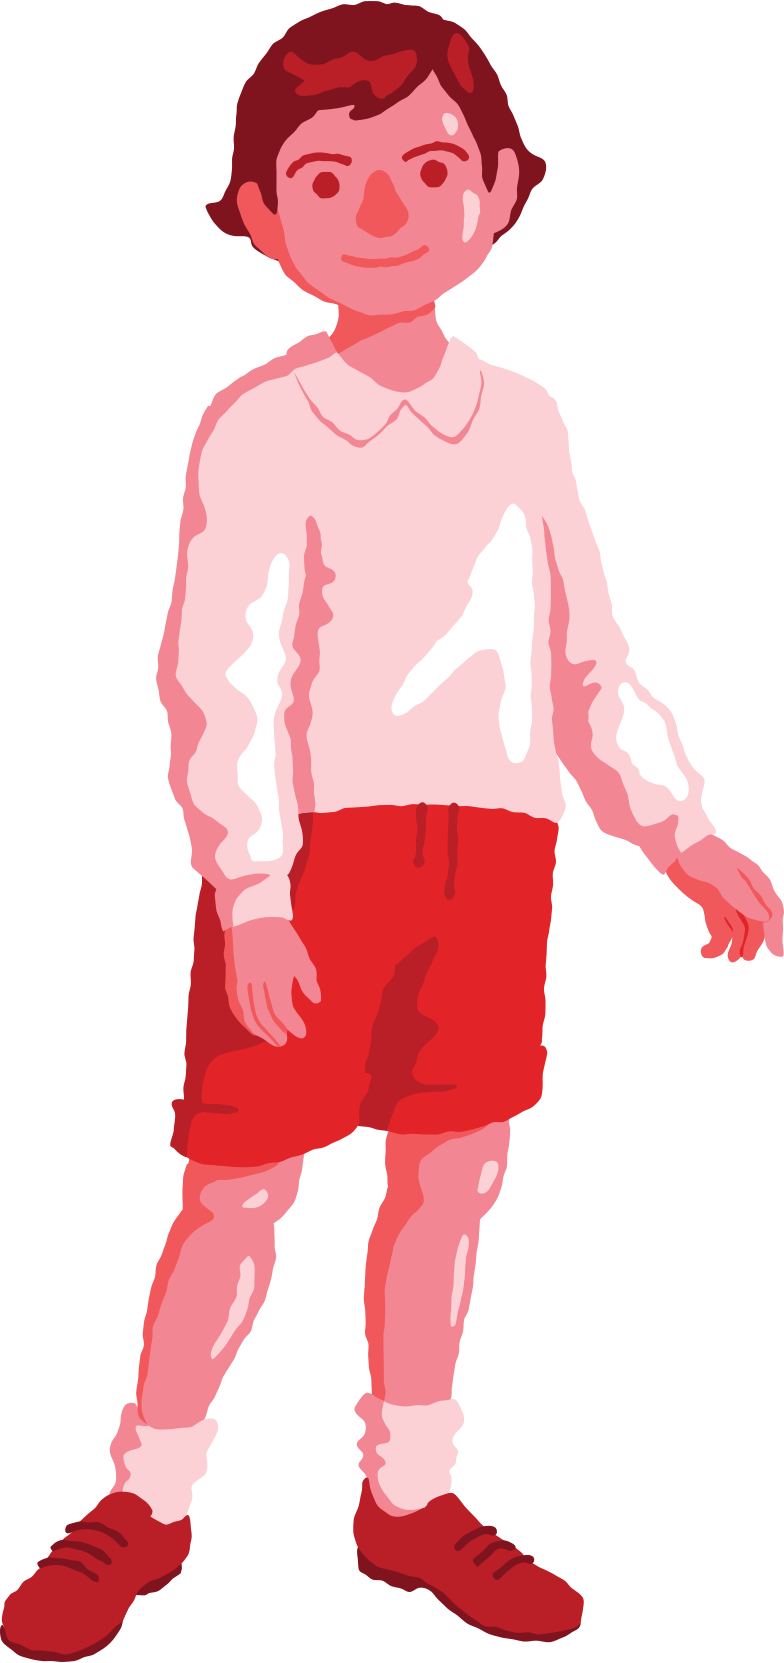 style boy standing front Vector images in PNG and SVG | Icons8 Illustrations